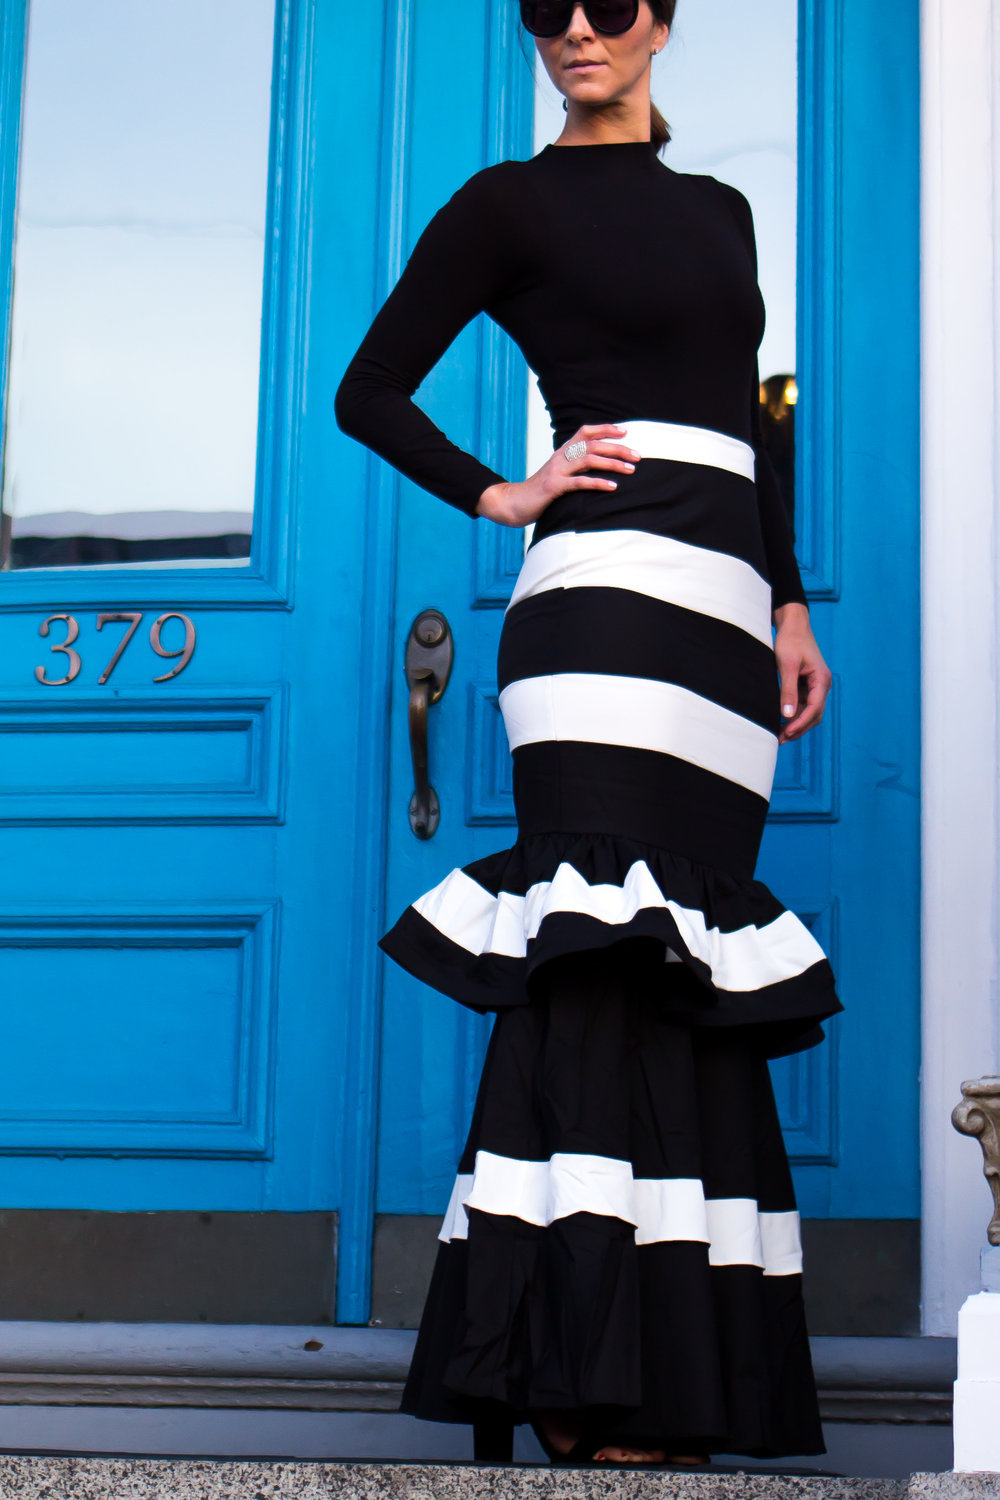 Formal Outfits – Holiday Outfits – Ruffle Skirt Outfits – Maxi Skirt Outfits – Ruffle Maxi Skirt Outfits - Fashion for Women – Holiday Party Outfits – Black and White Outfits - Wedding Outfits –  heartandseam.com  #heartandseam #forever21